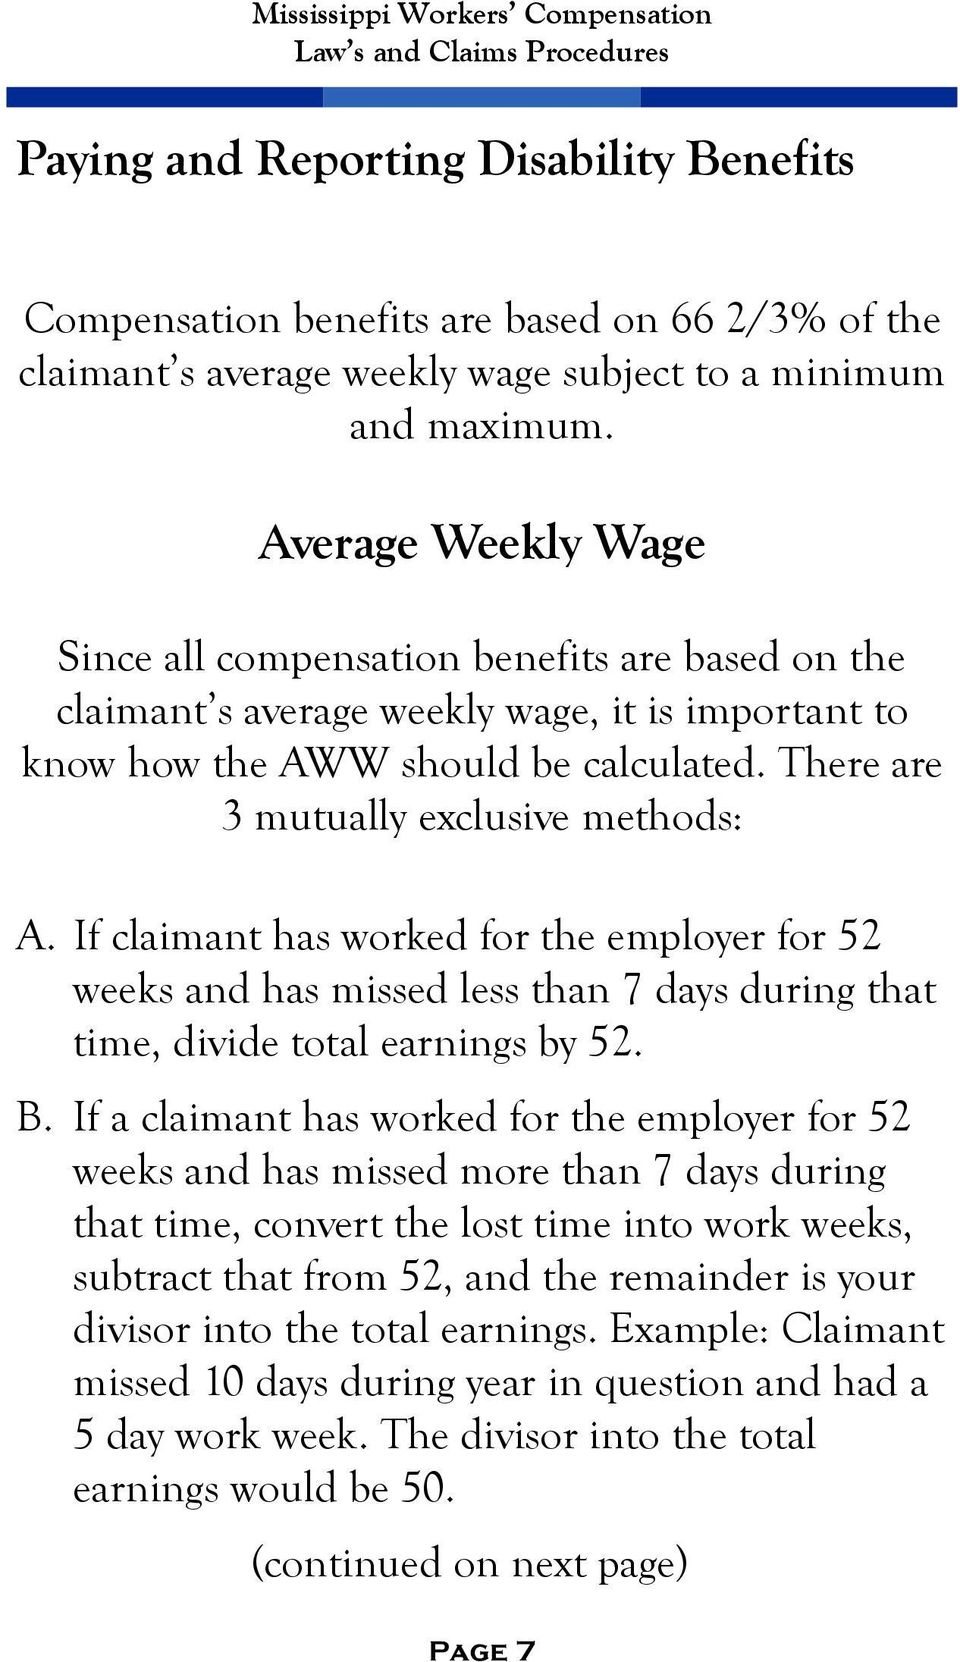 There are 3 mutually exclusive methods: A. If claimant has worked for the employer for 52 weeks and has missed less than 7 days during that time, divide total earnings by 52. B.